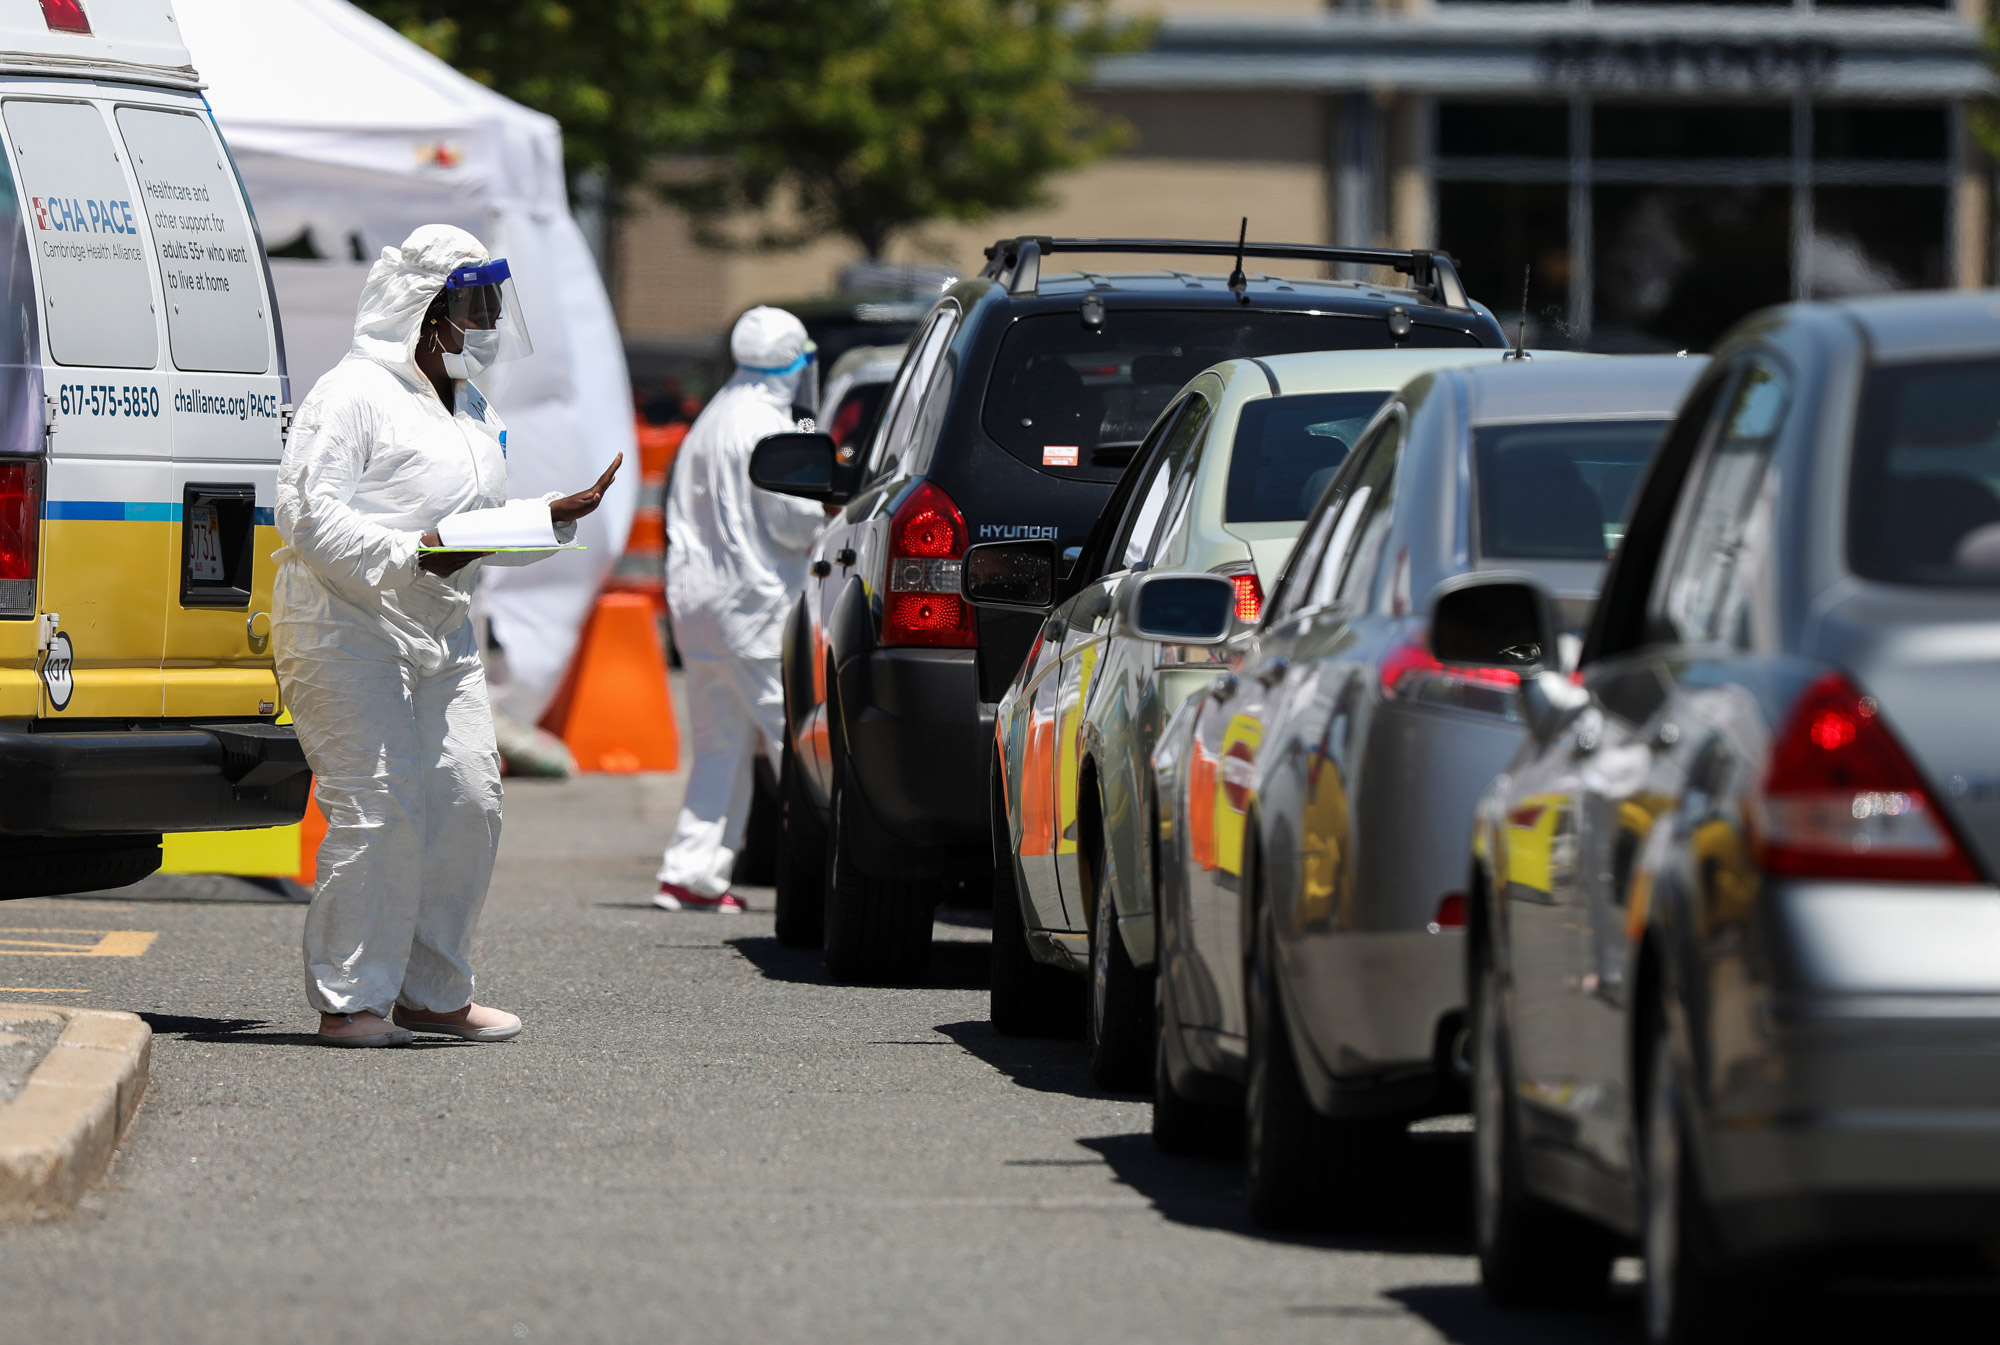 Medical workers take down personal information from those driving in at a Coronavirus testing location in the Cambridge Health Alliance Testing Tent in Cambridge, Massachusetts, on June 18.